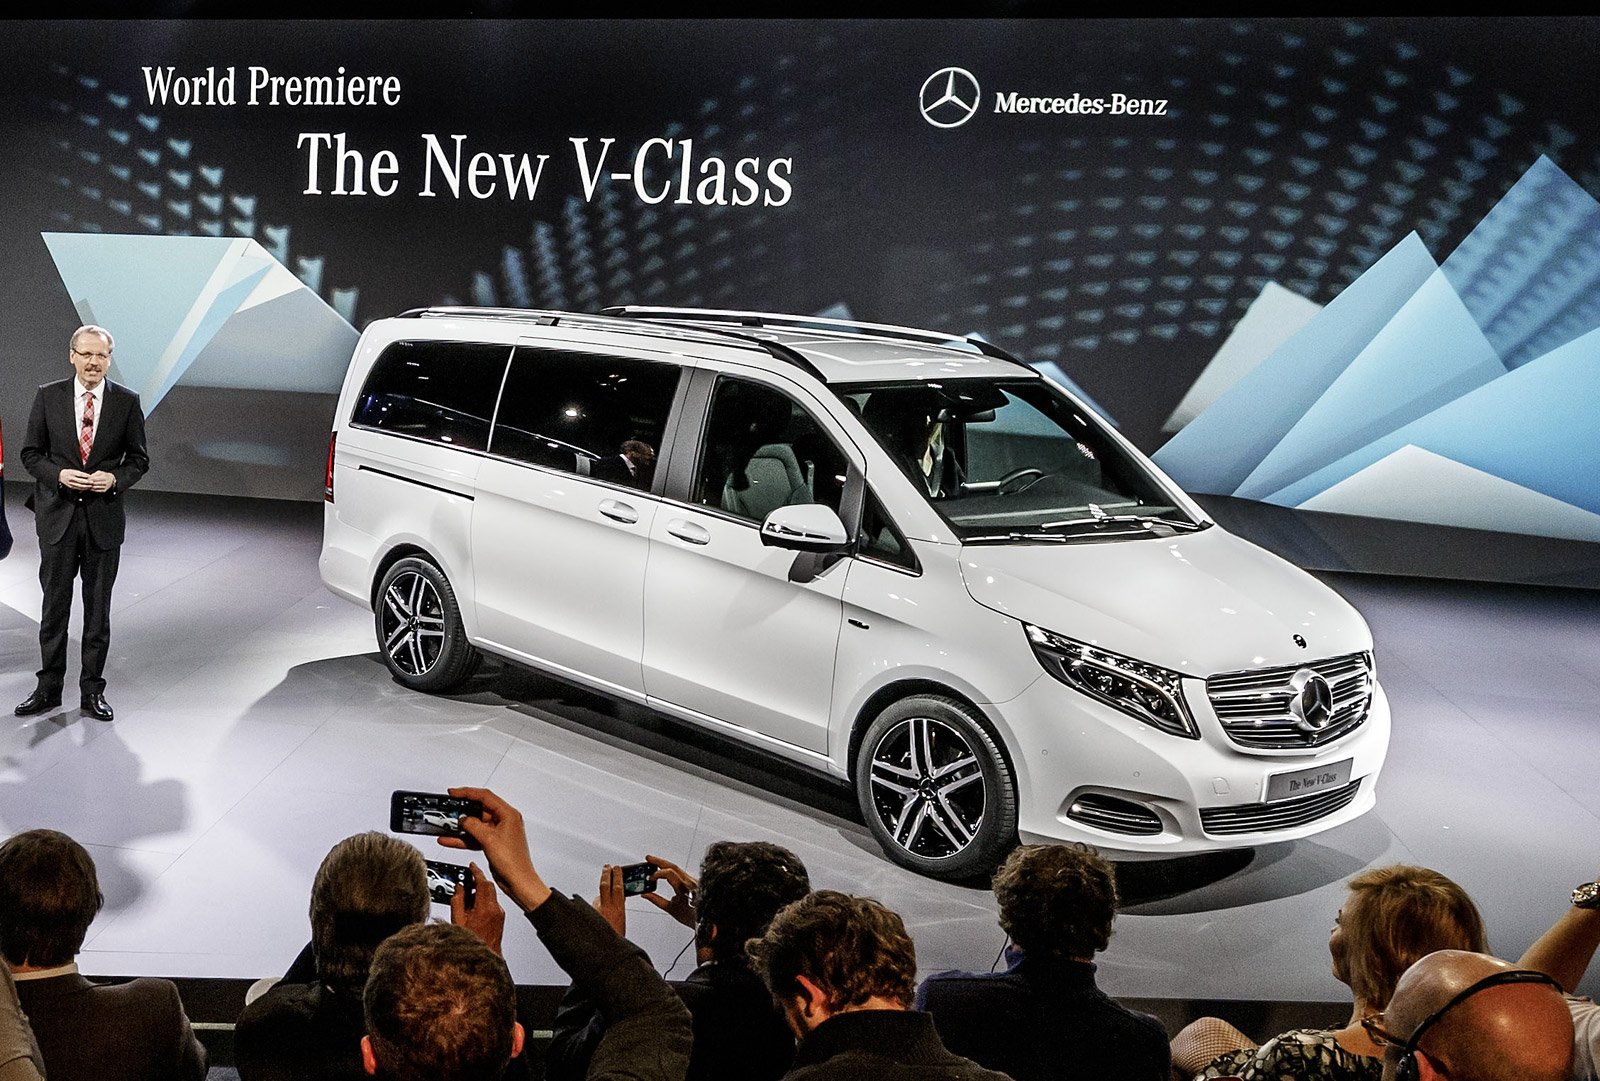 F Type Price >> 2014 Mercedes-Benz V-Class Revealed: Video